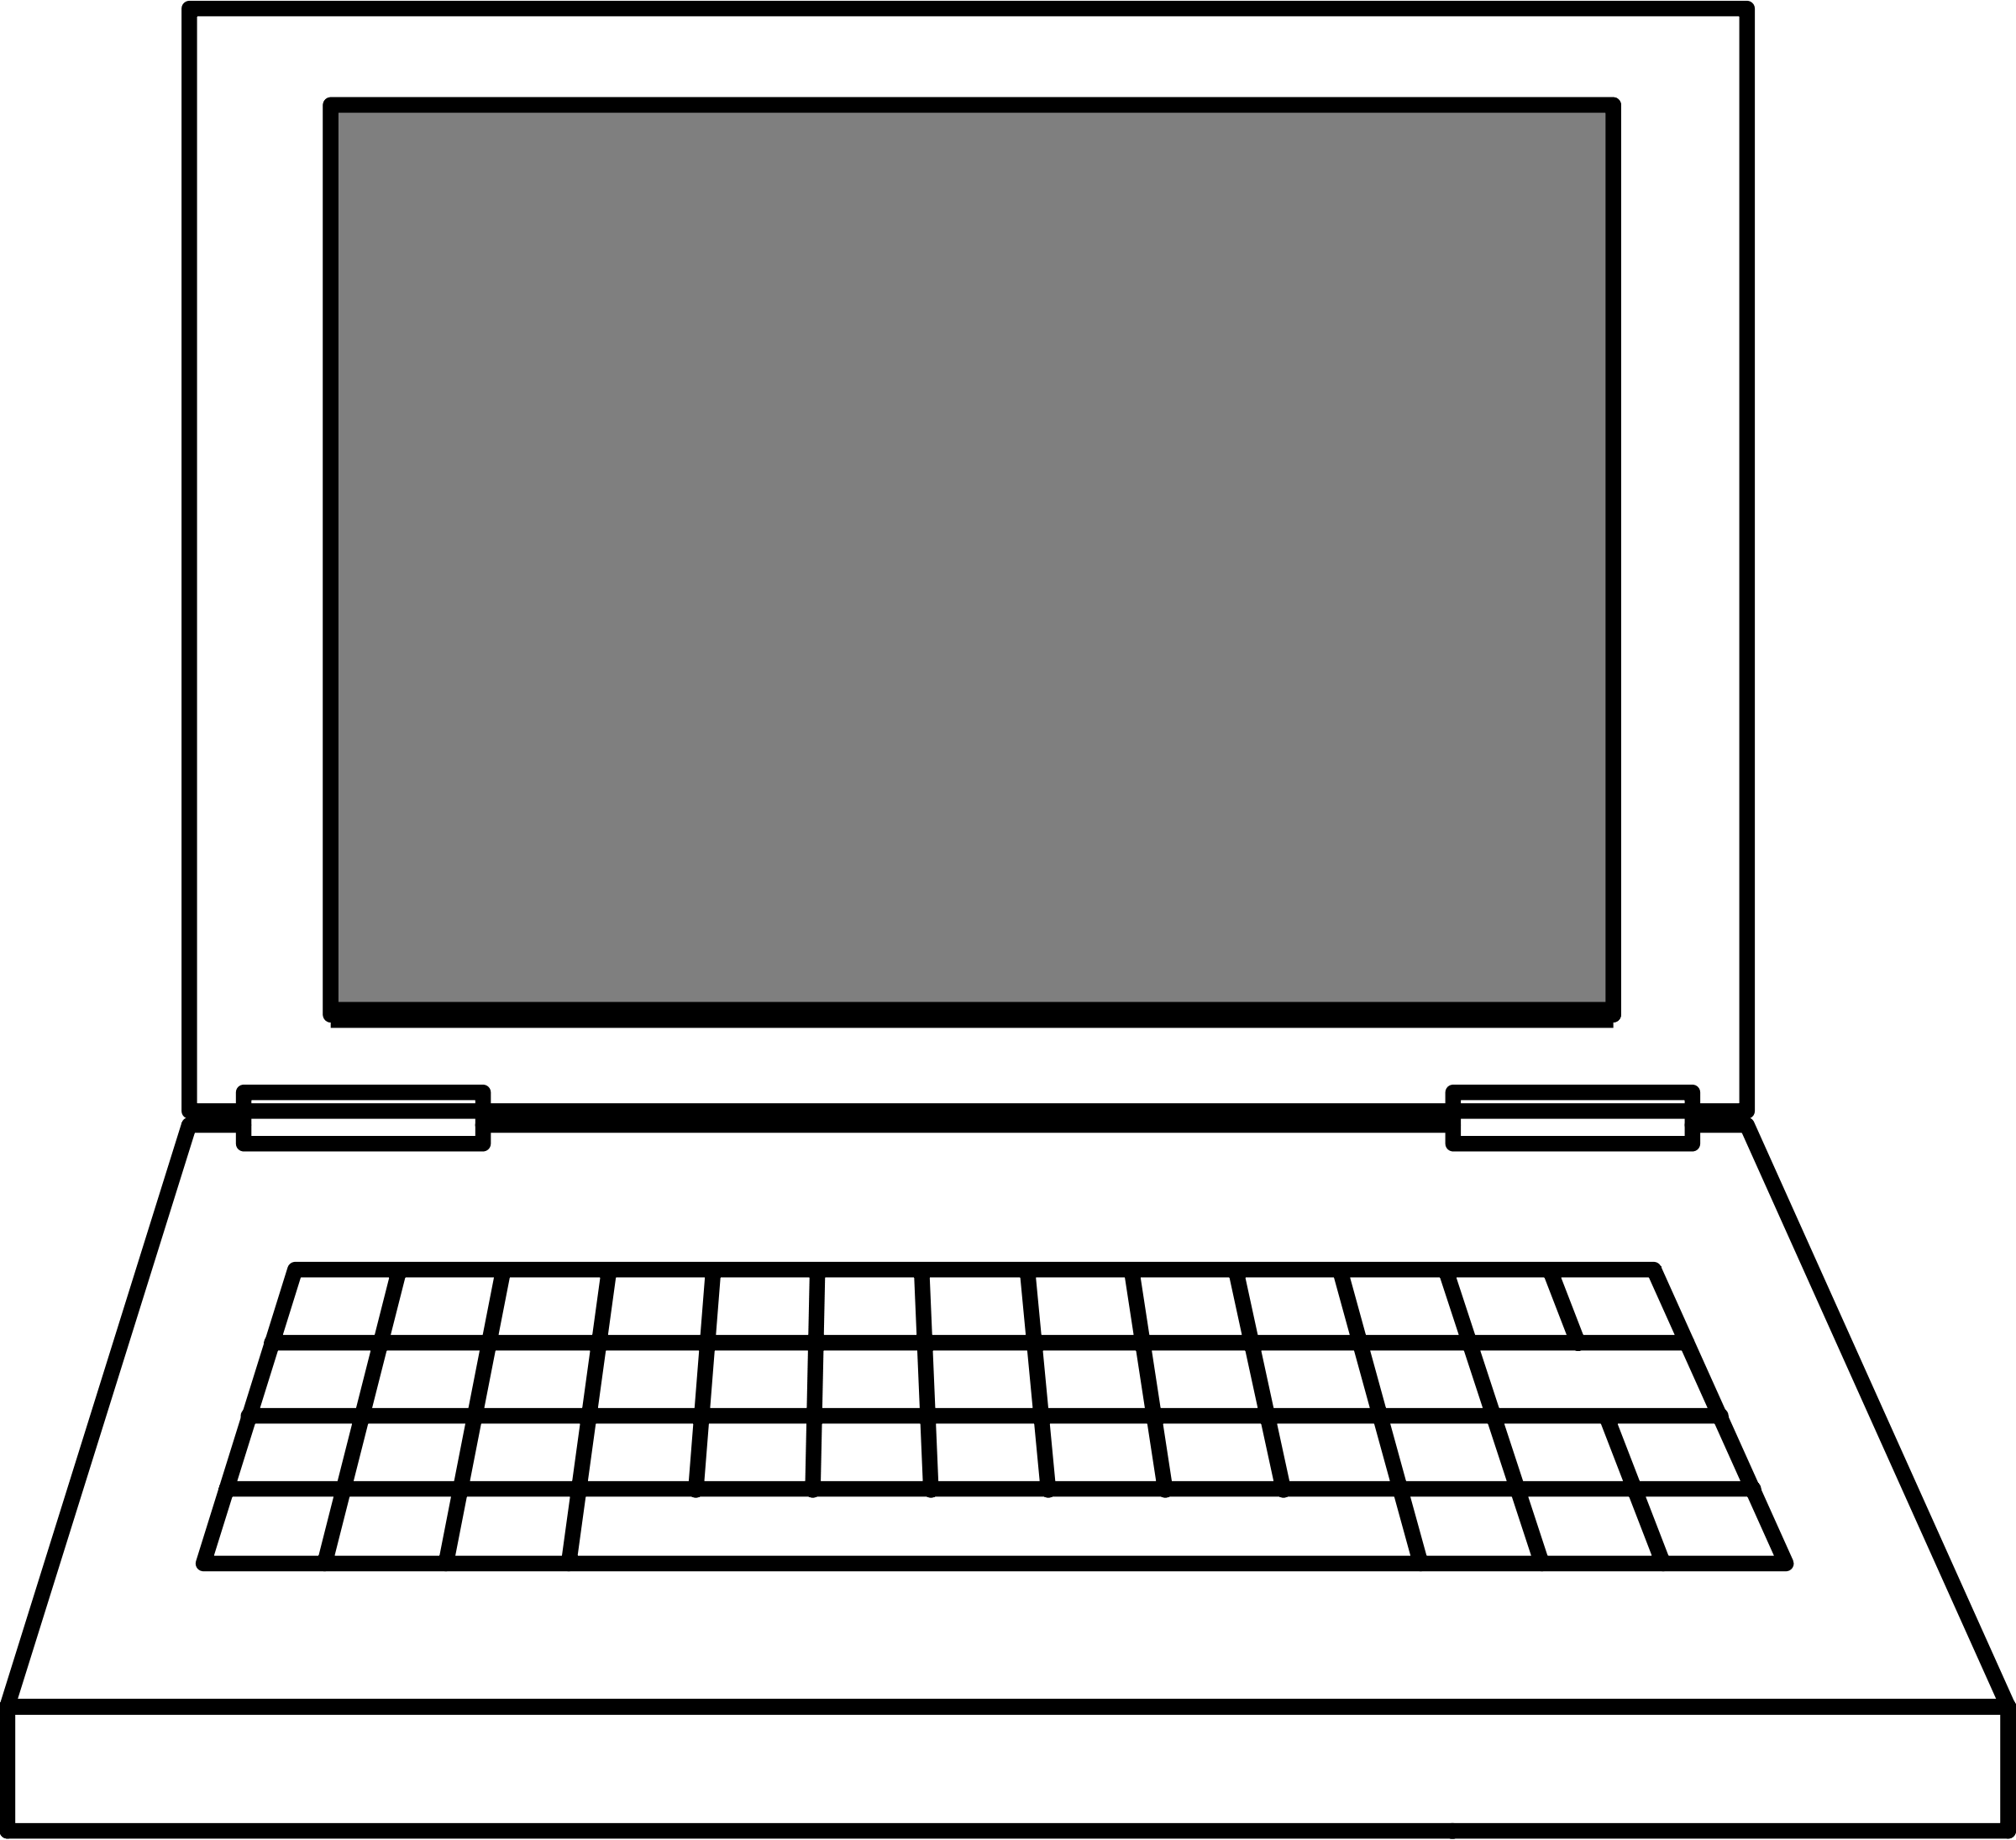 Tablet Computer Clipart | Clipart Panda - Free Clipart Images